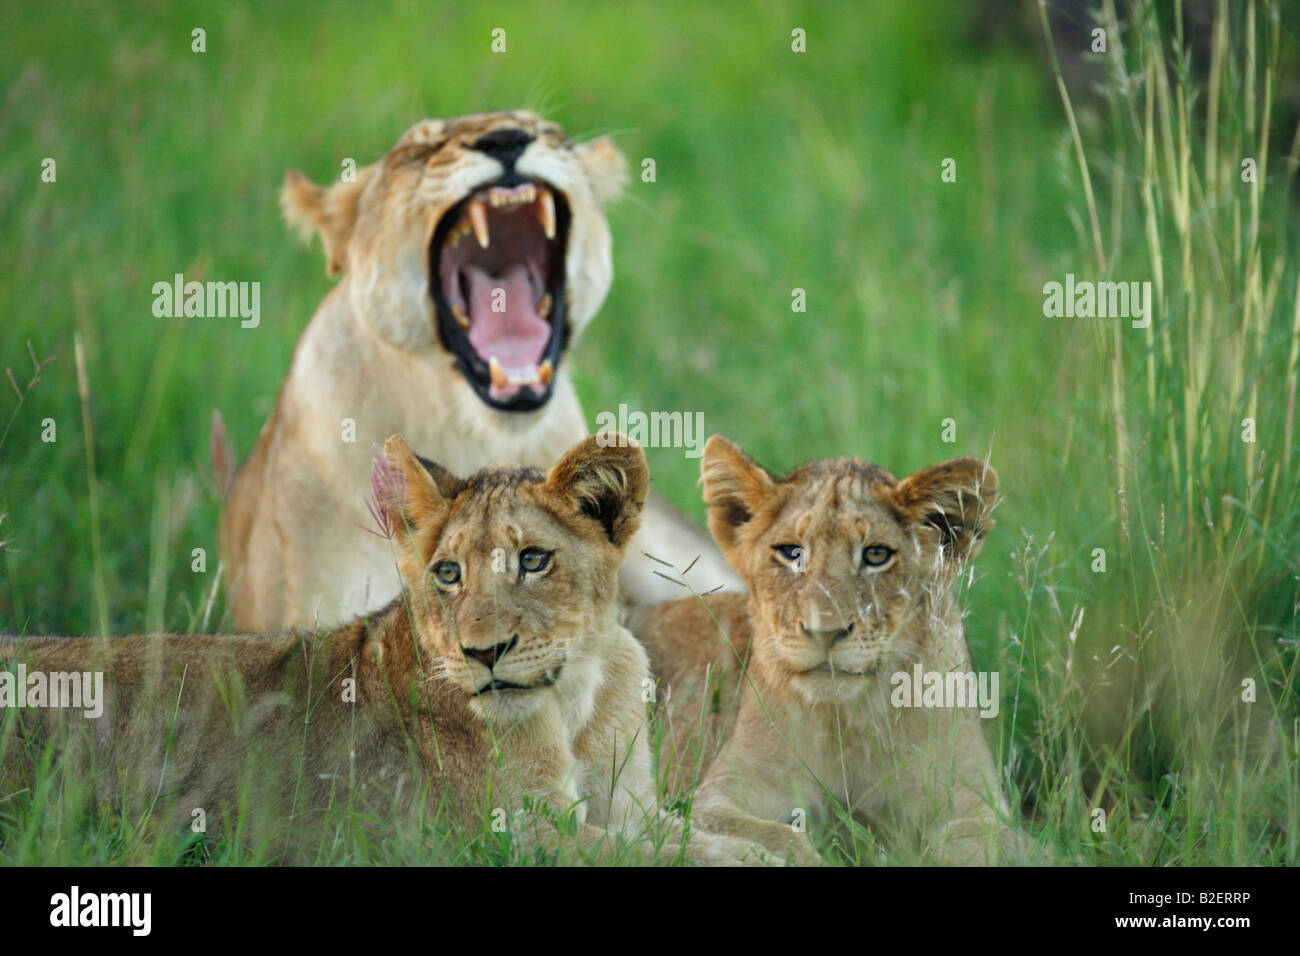 Two lion cubs resting in front of a female yawning in the background - Stock Photo